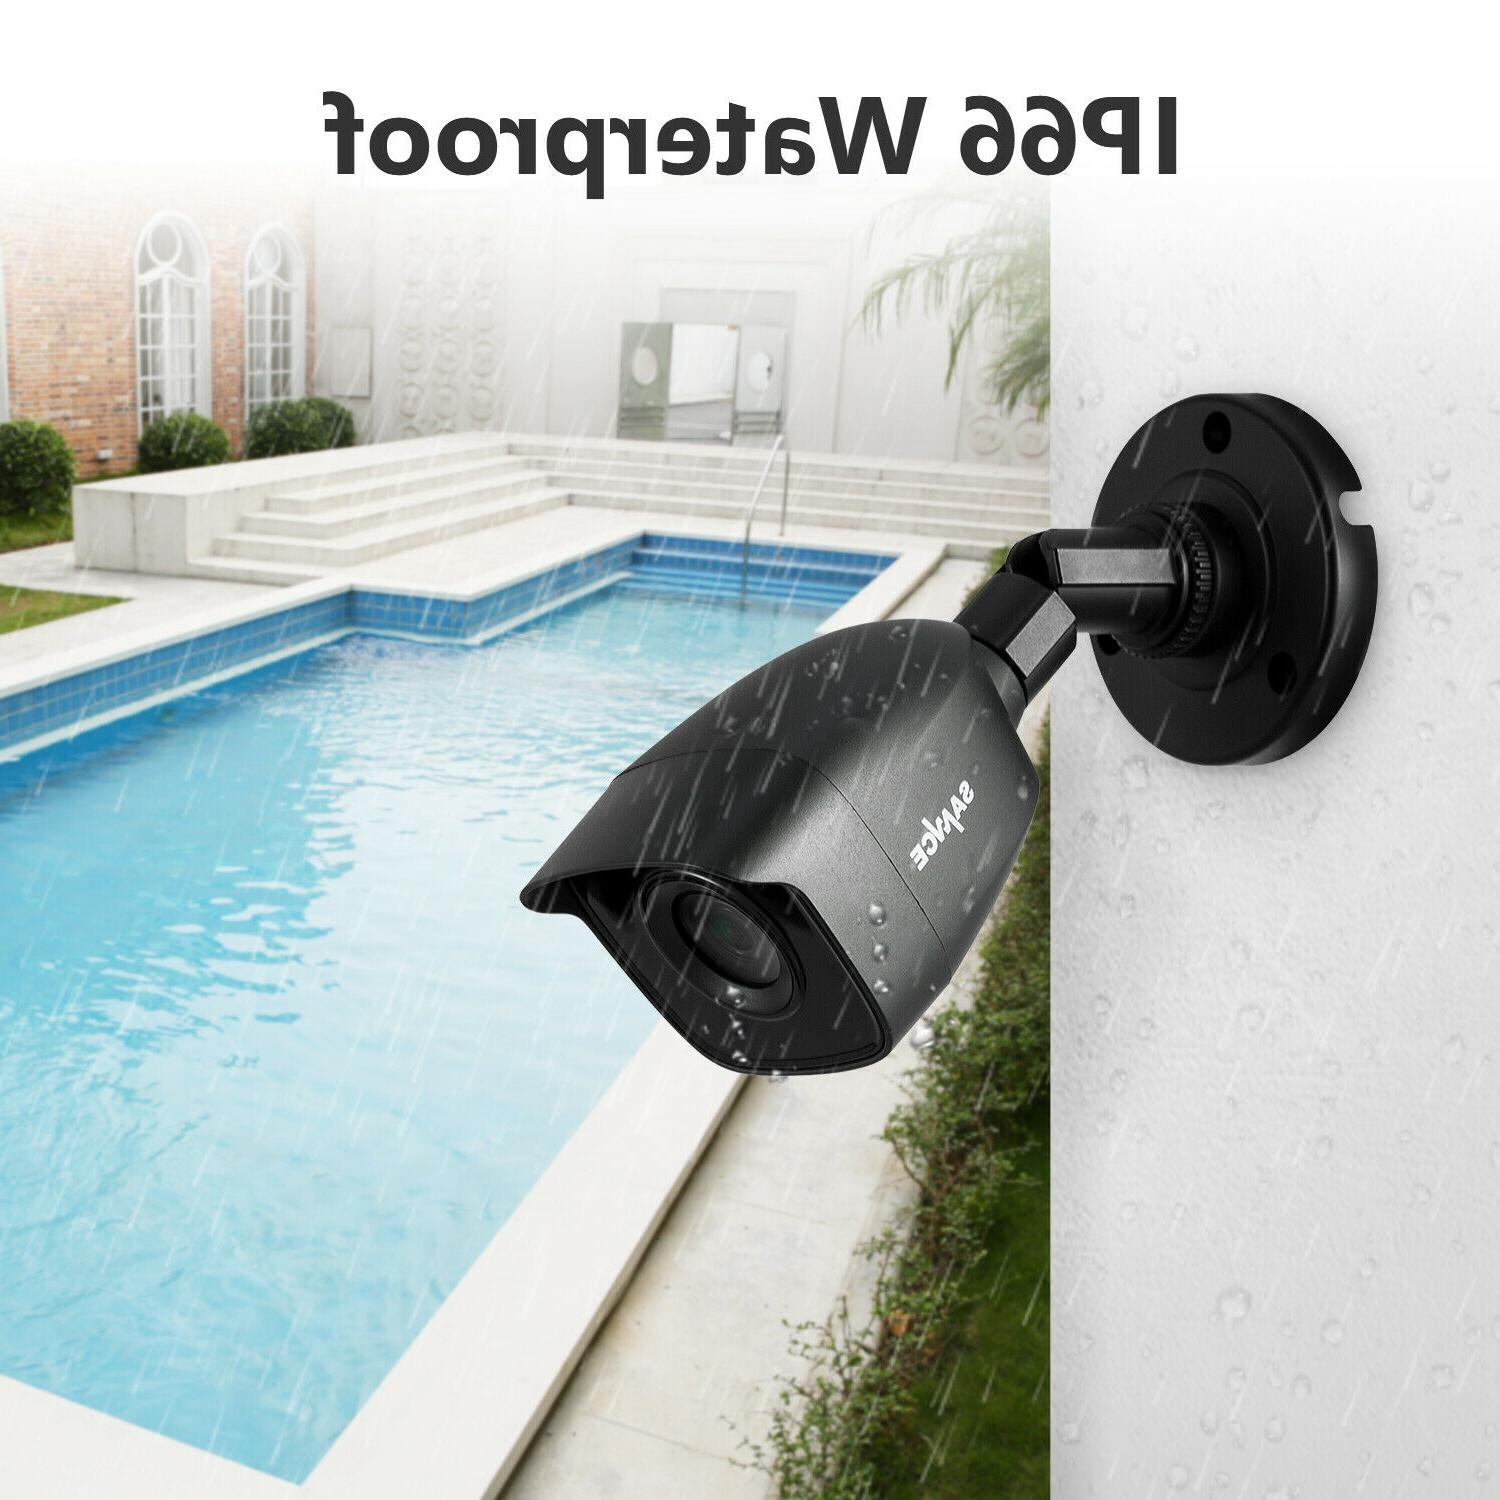 SANNCE 8CH 5IN1 DVR CCTV Security System